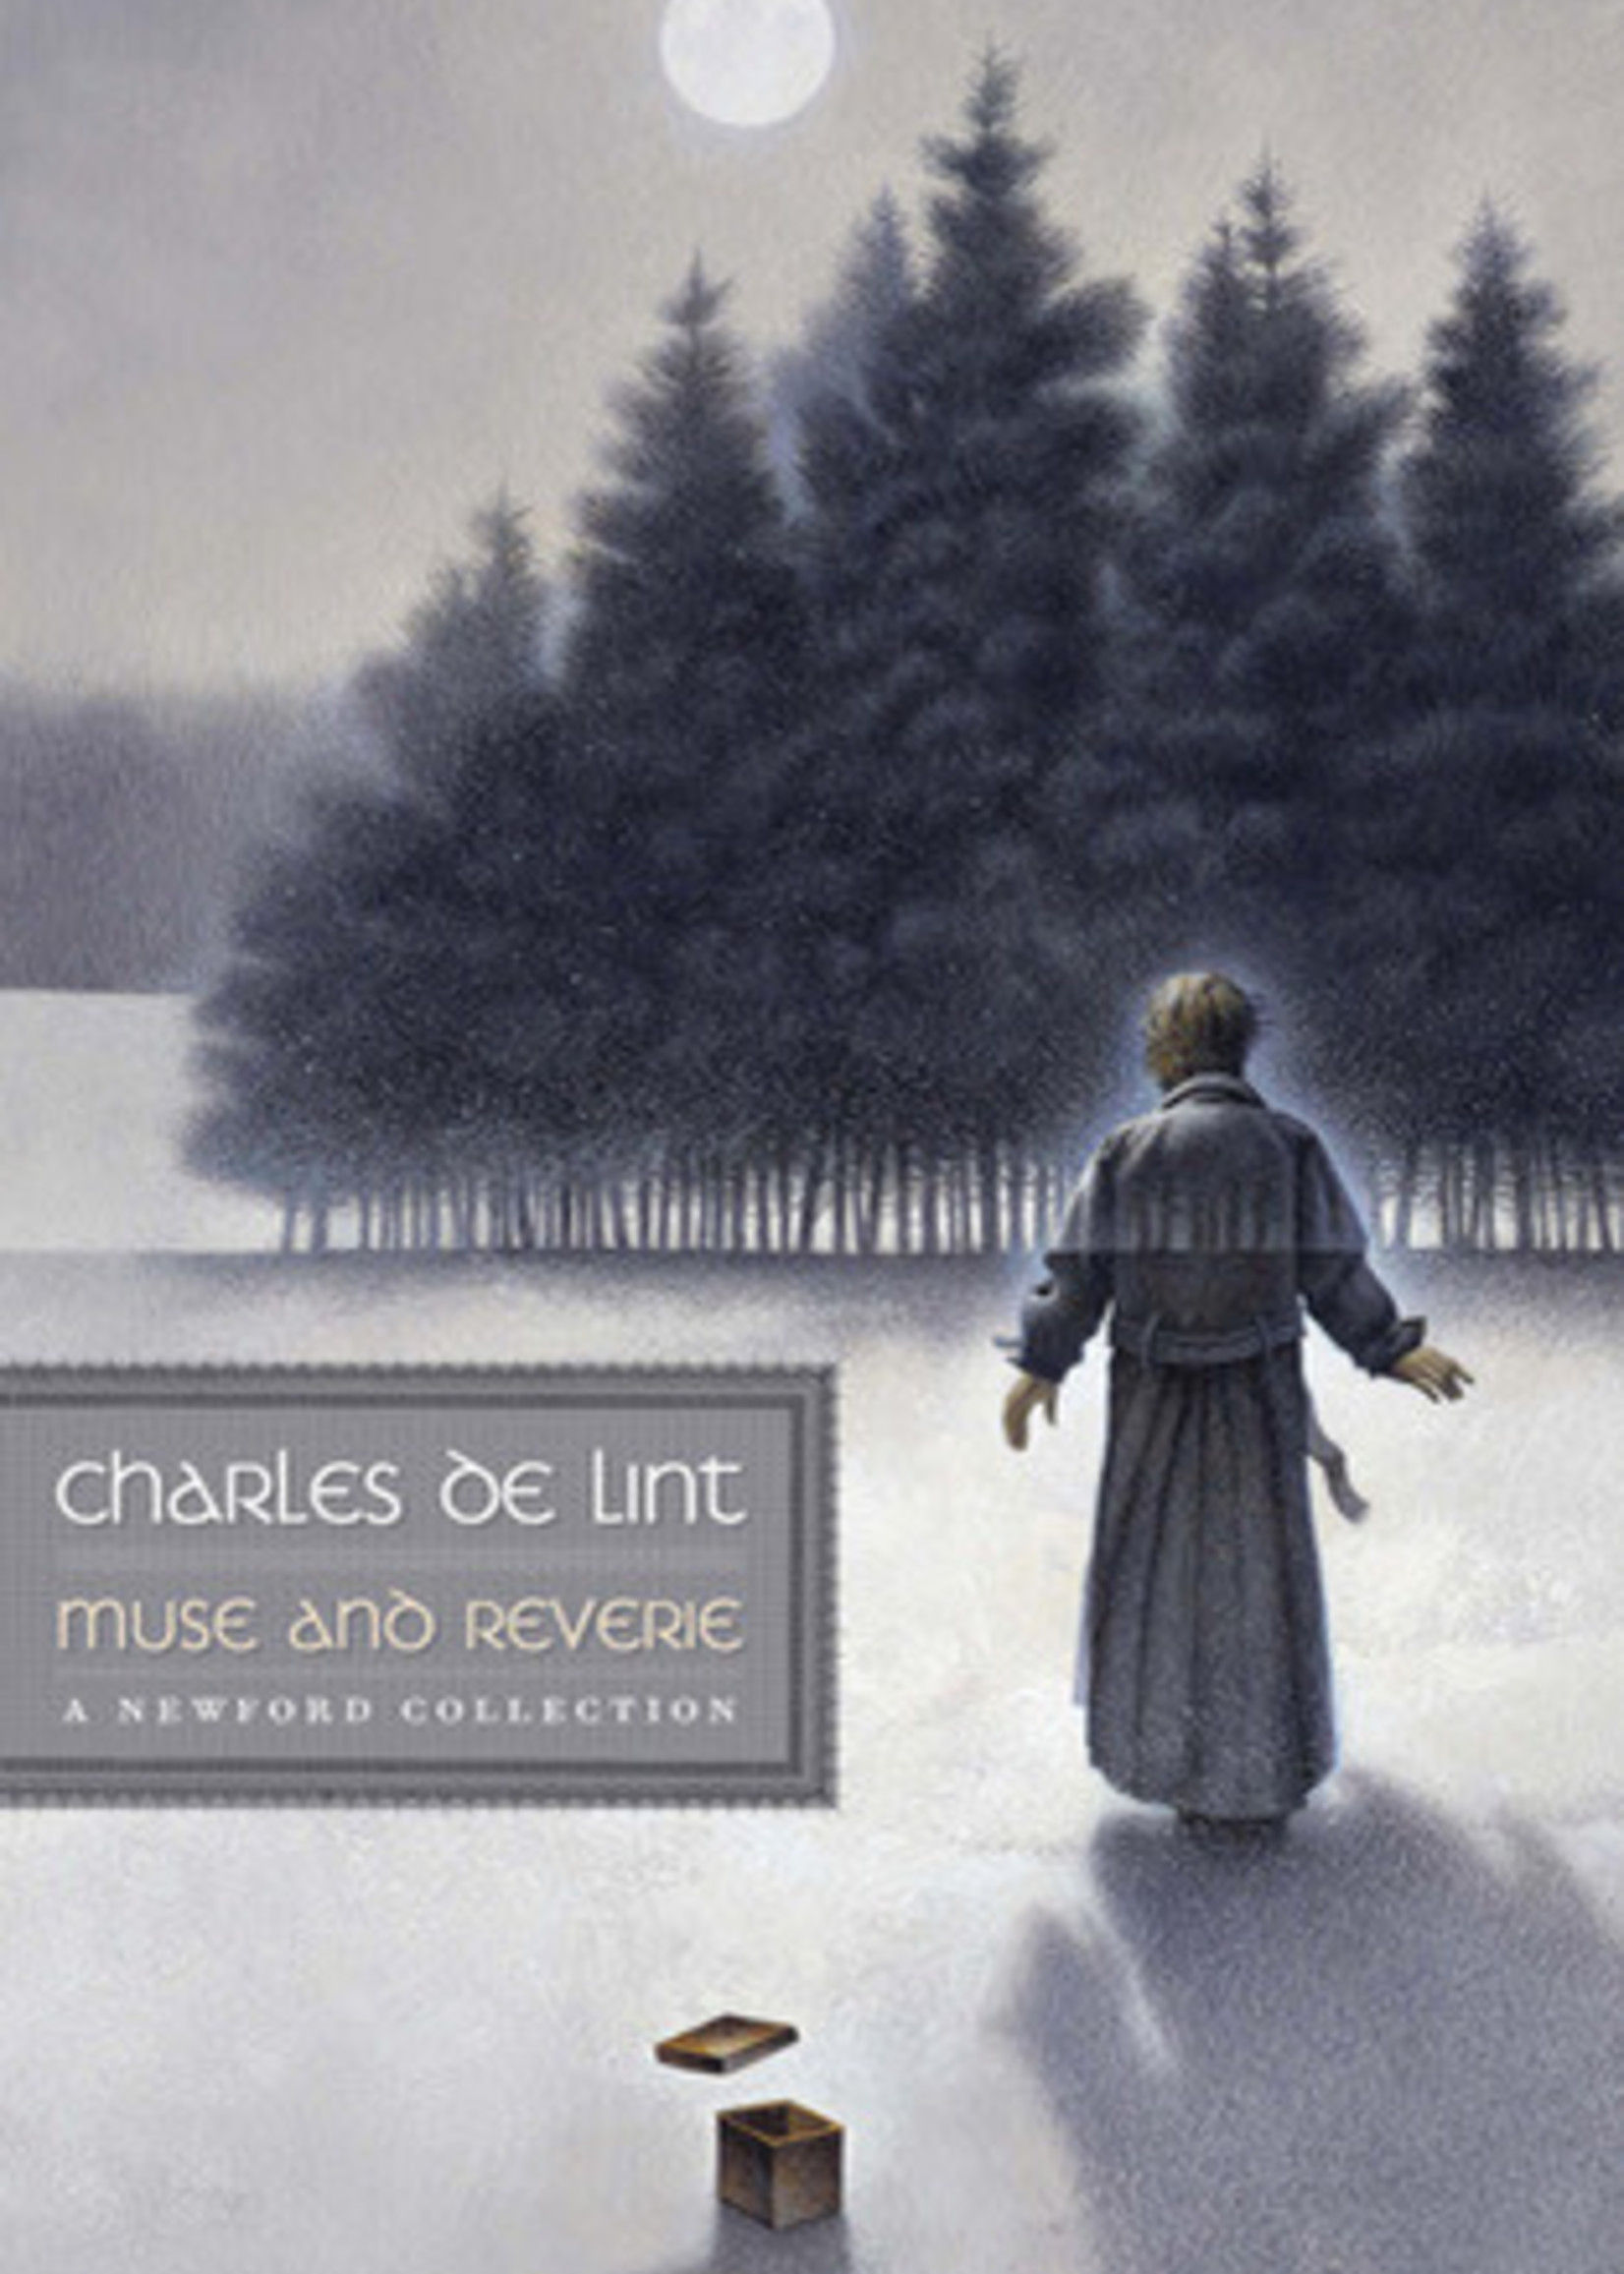 Muse and Reverie by Charles de Lint